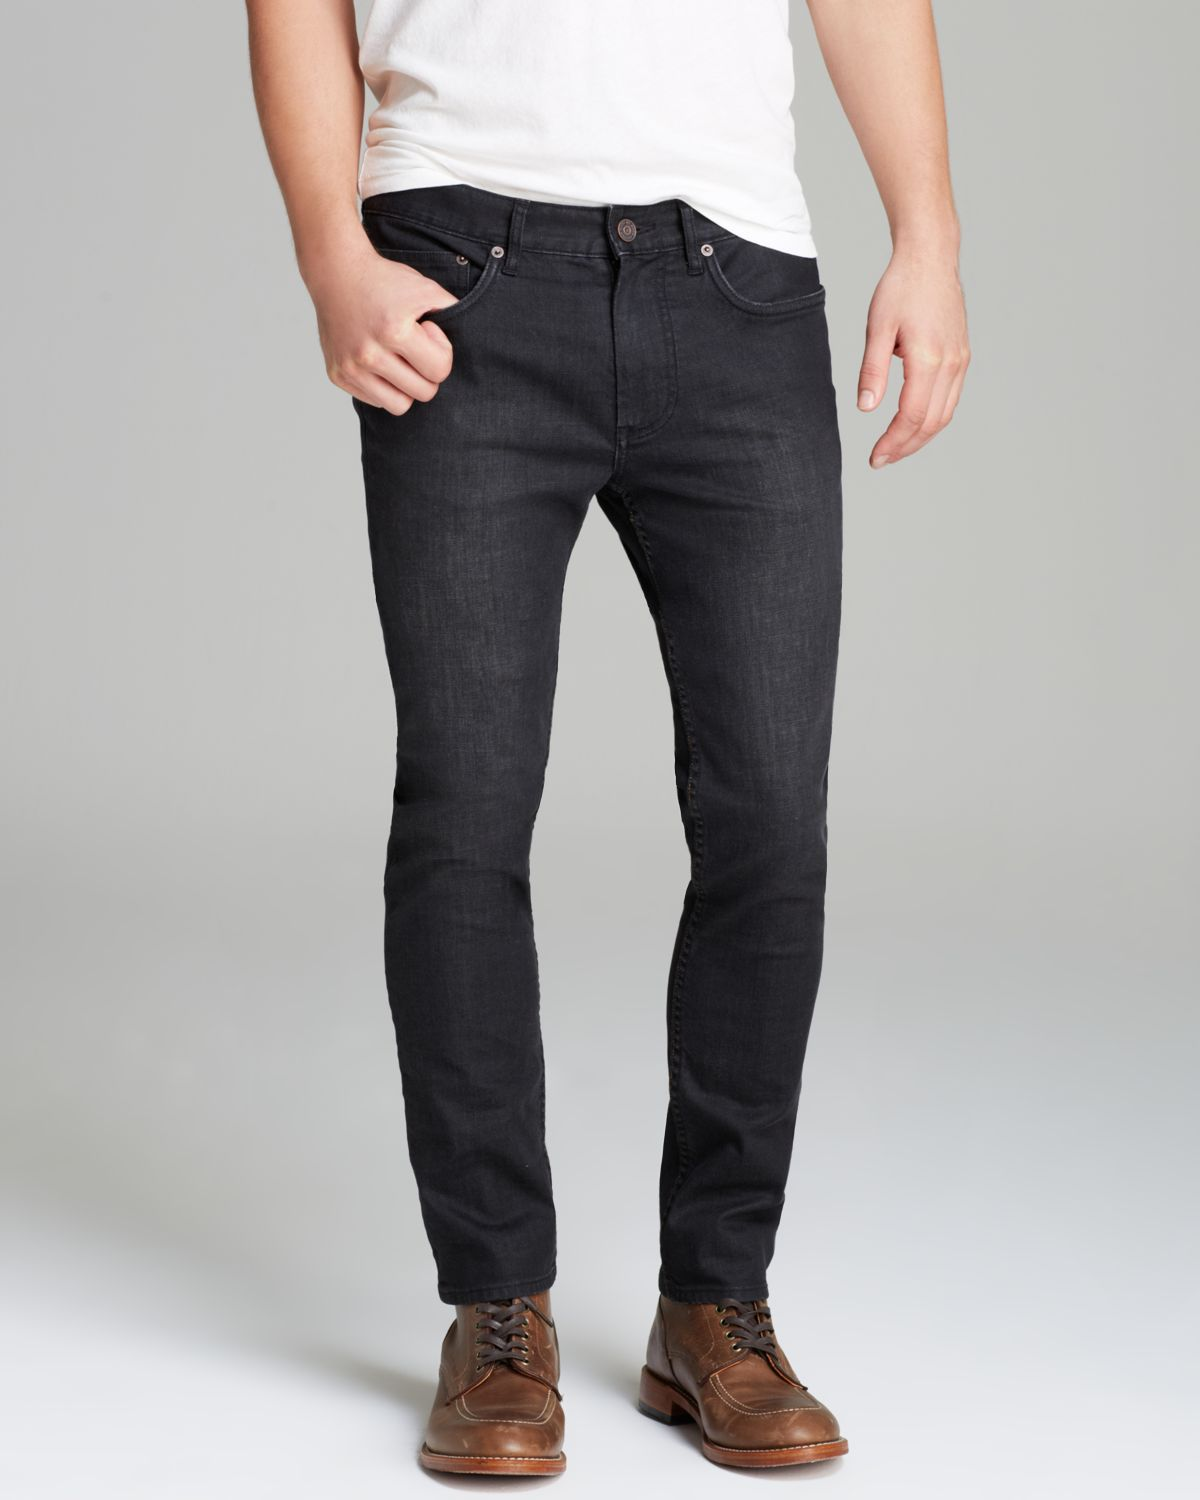 Marc by marc jacobs Jeans Slim Fit in Shadow in Gray for Men | Lyst